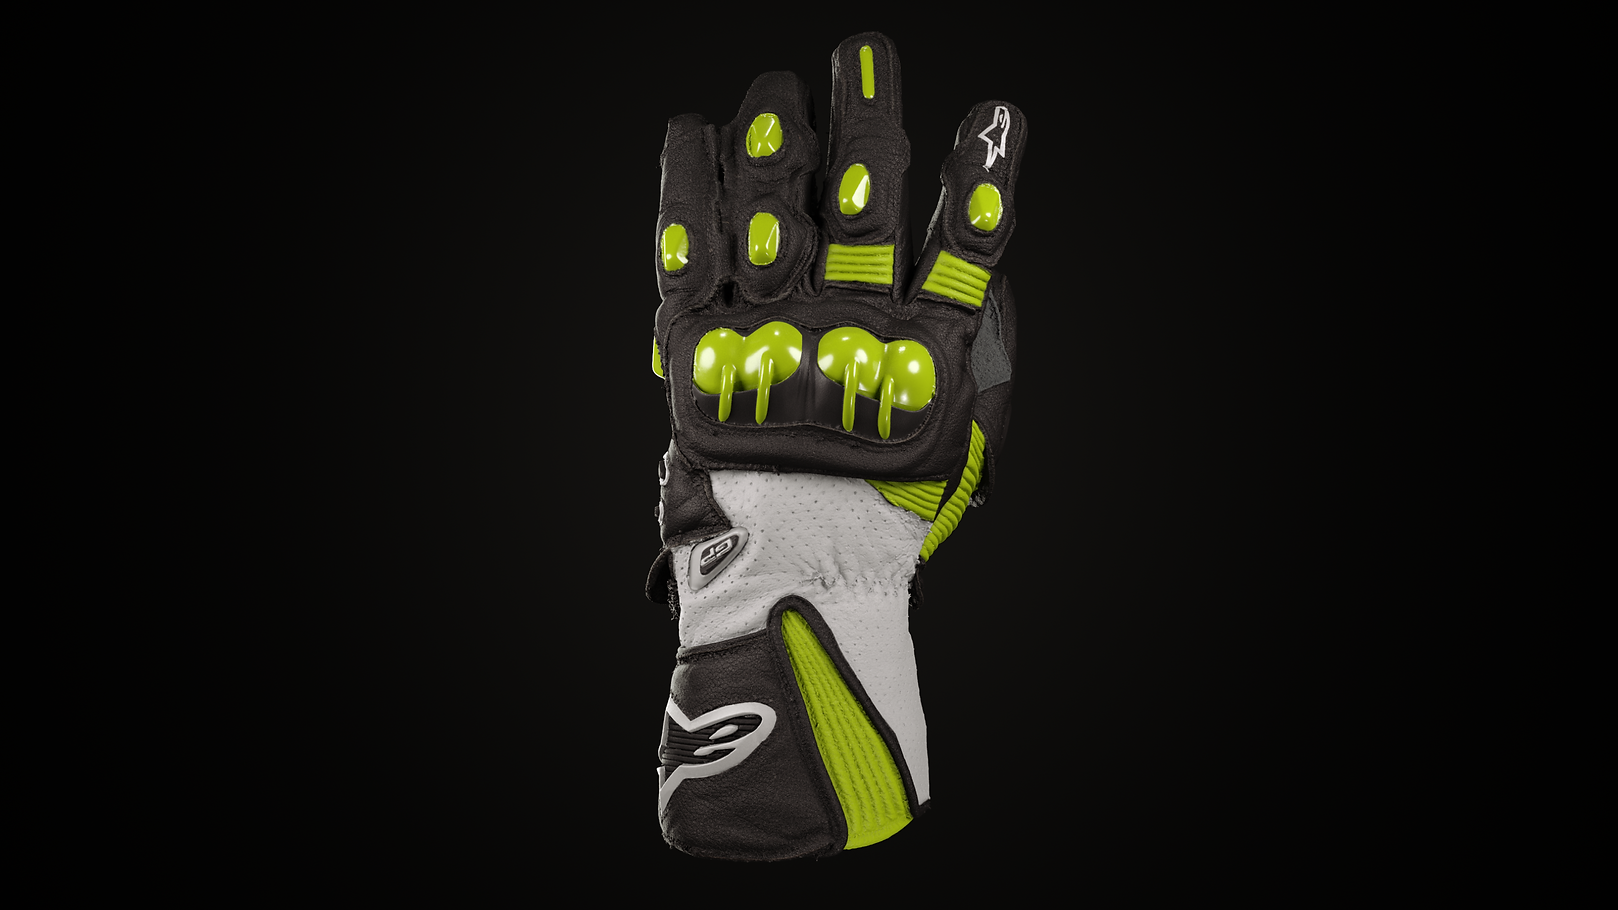 Alpinestars_Design_At_Sketch_19.png